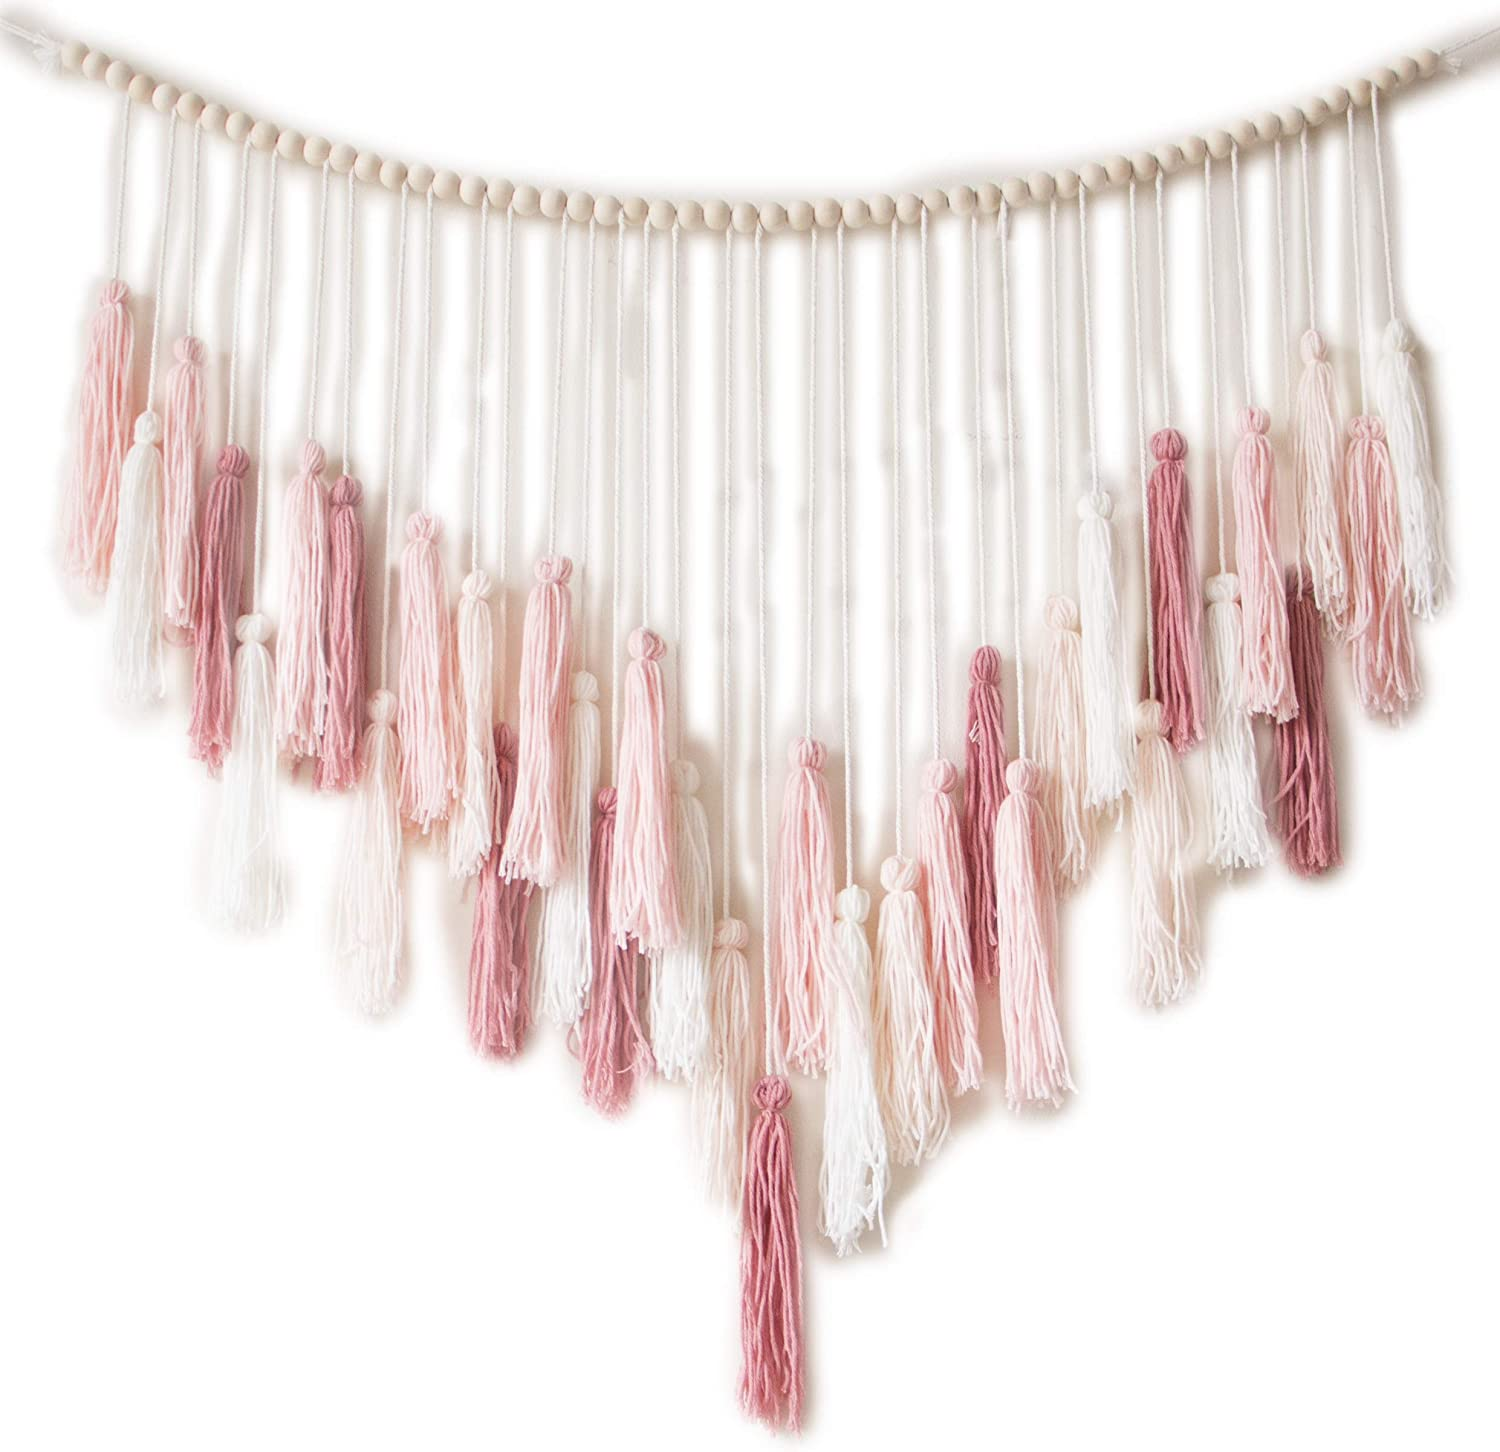 Decocove Macrame Wall Hanging - Large Macrame Wall Hanging with Wood Beads - Bohemian Wall Decor for Bedroom, Living Room and Kitchen - Warm Blush Pink - 35'' x 36''